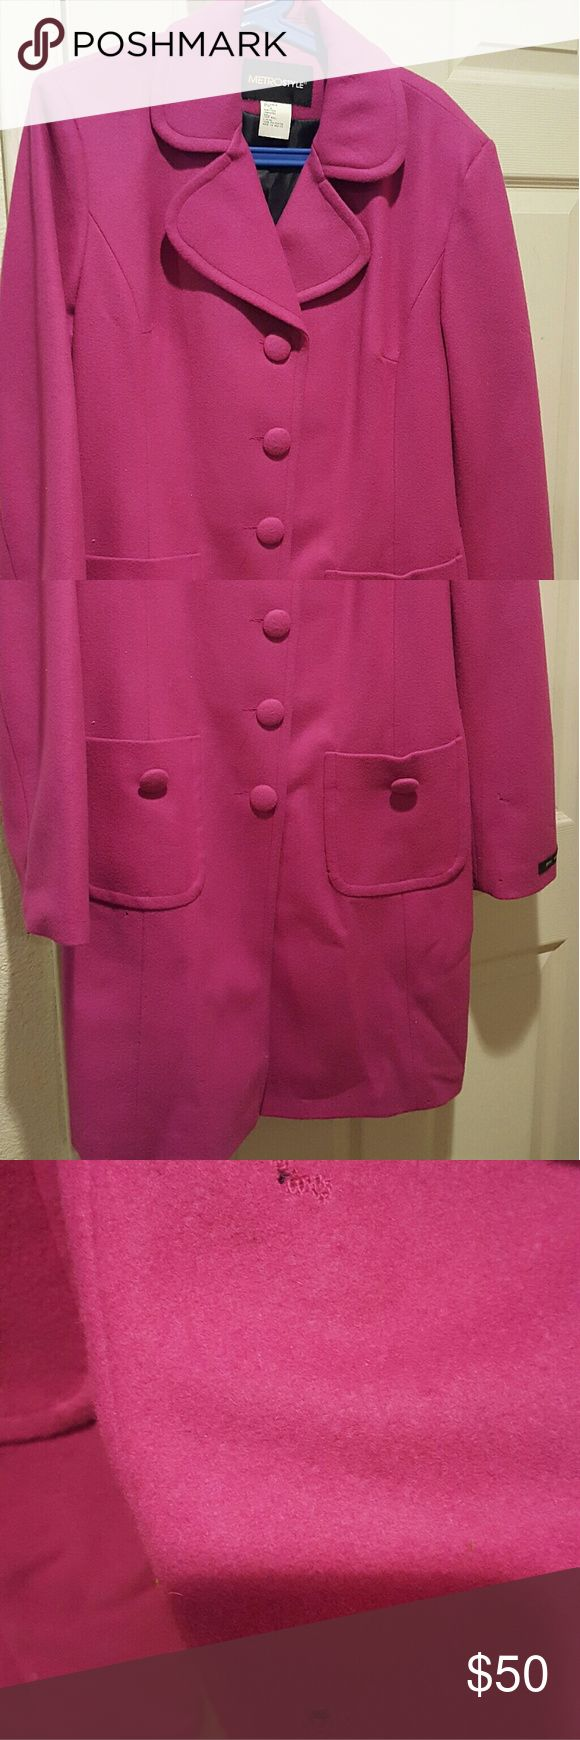 New Metro Style Fuschia Jacket 100% Wool Cute!! Cute Style Got as a Gift wasnt able to fit into it. There are 3 small pin holes as shown in picture not aure how happened, never worn. Reasonable offers accepted would like someone to get some wear out of it. Metro Style Jackets & Coats Trench Coats